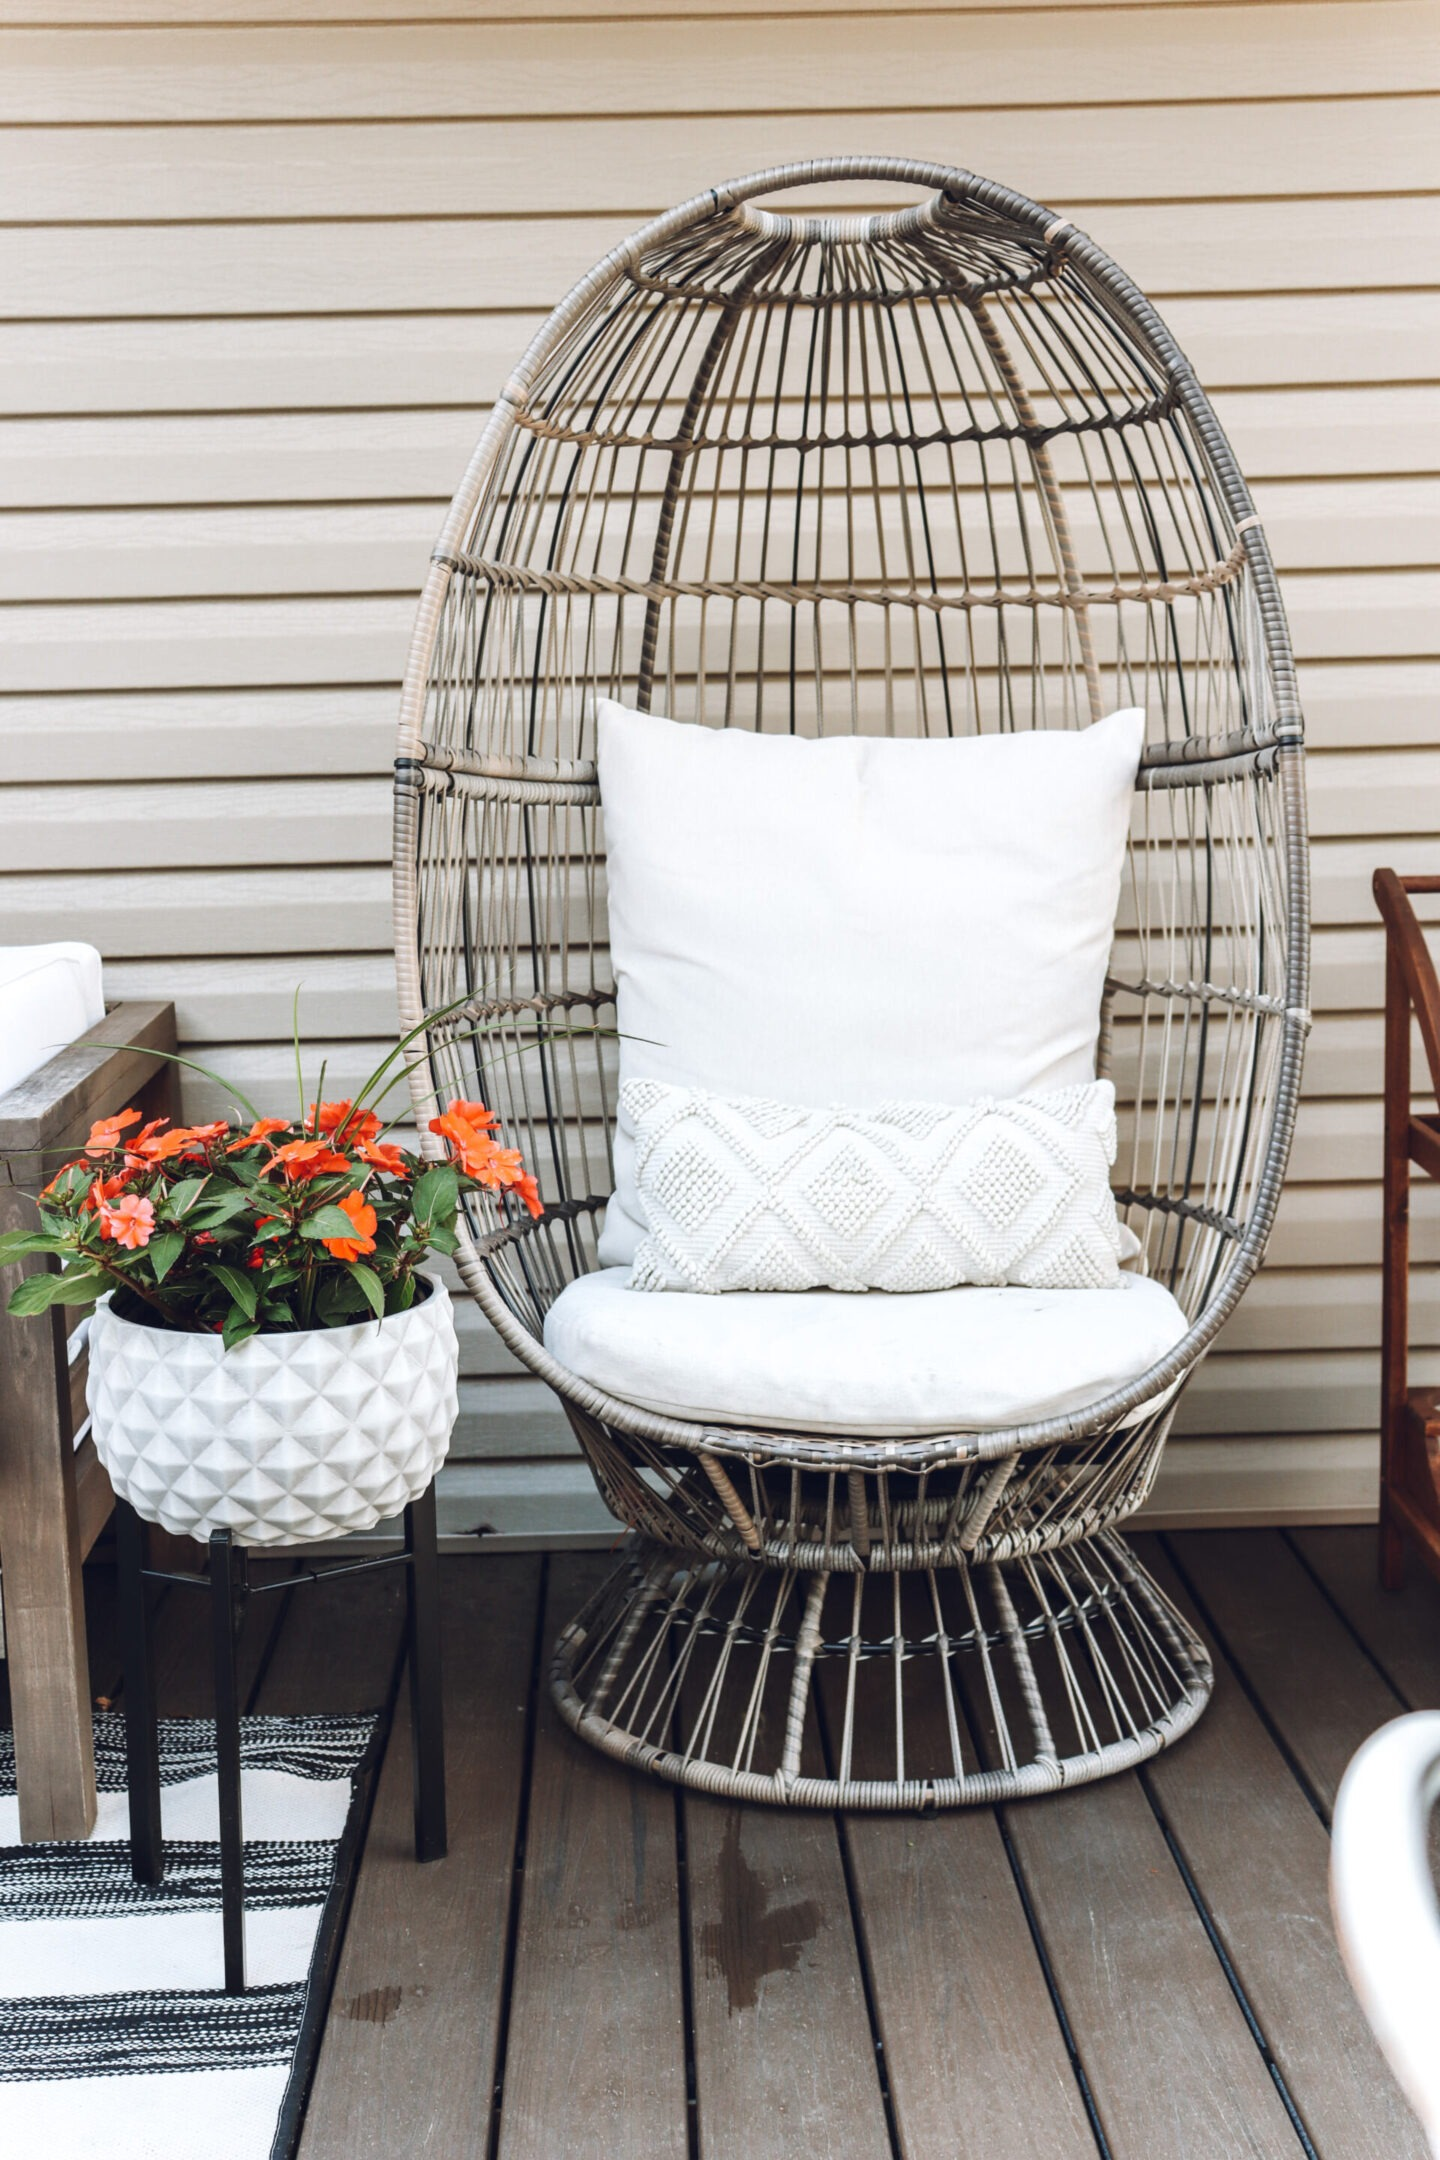 egg chair on deck